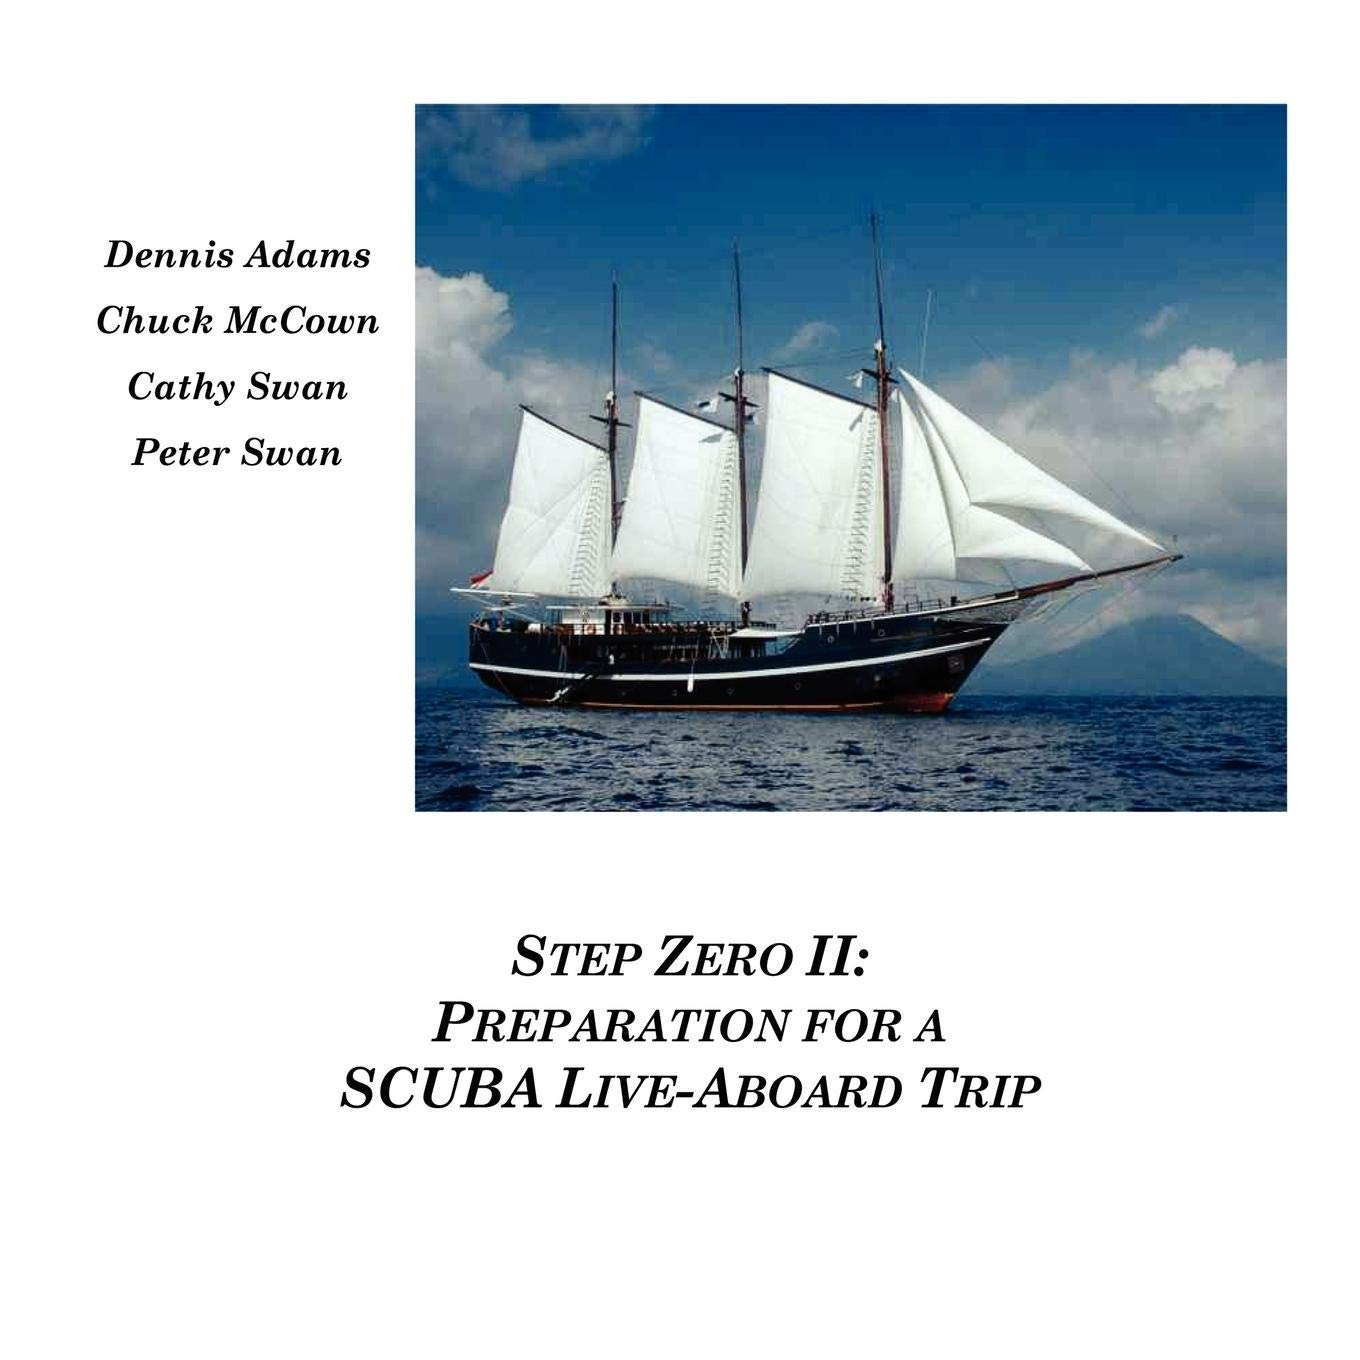 Step Zero II: Preparation for a SCUBA Live-Aboard Trip by SouthWest Analytic Network, Inc.